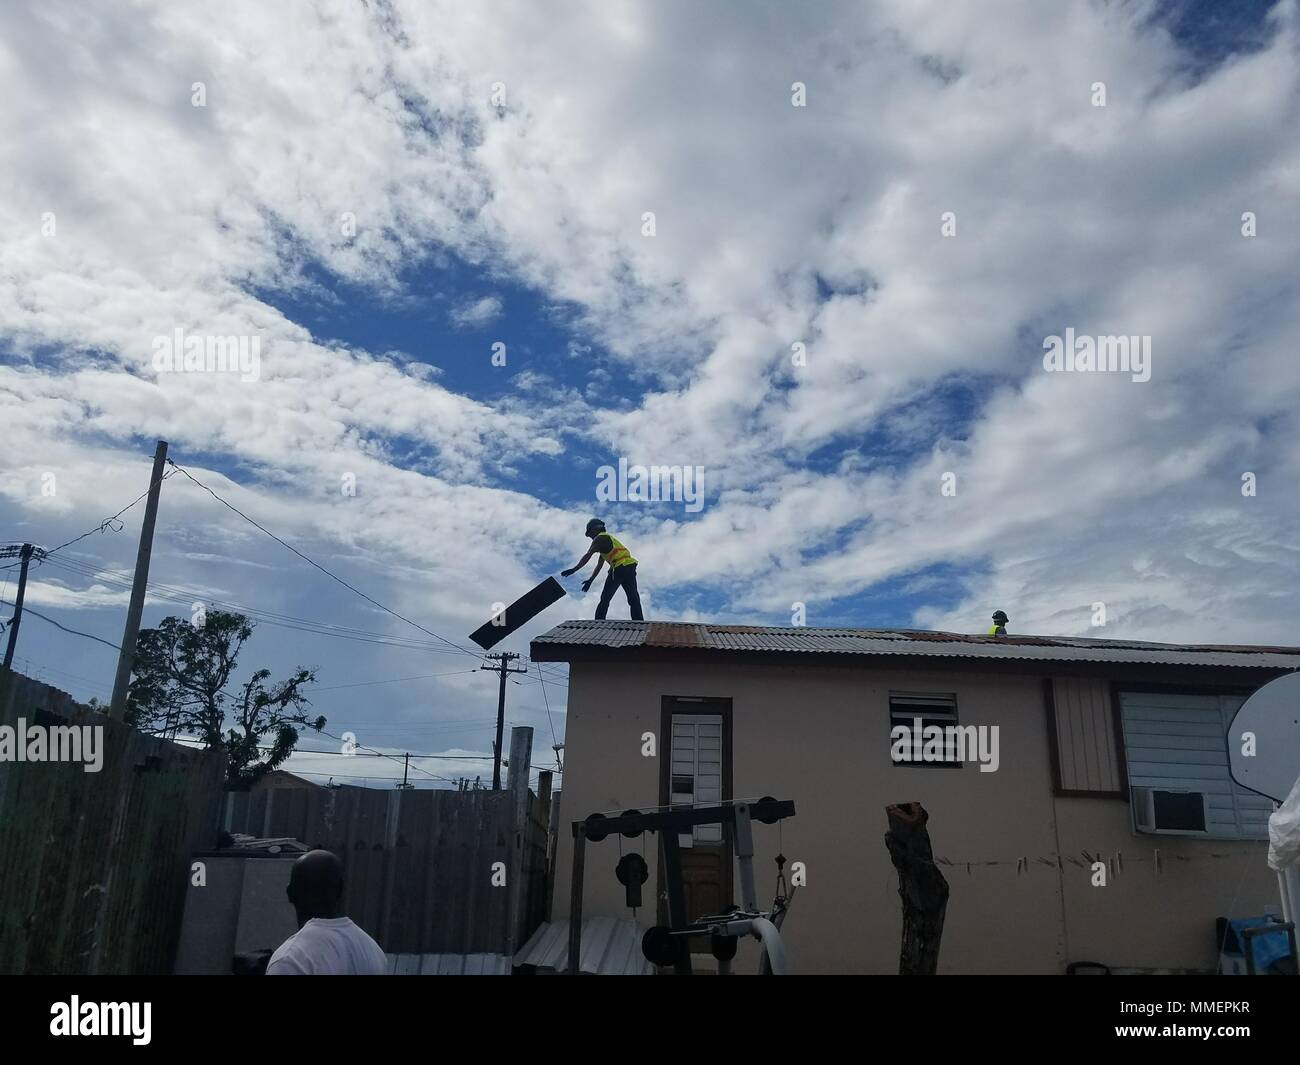 Ponce Puerto Rico Noel Silva A Contractor Working For The U S Army Corps Of Engineers Removes A Damaged Section Of Roofing To Prepare The Structure For A Temporary Blue Roof In